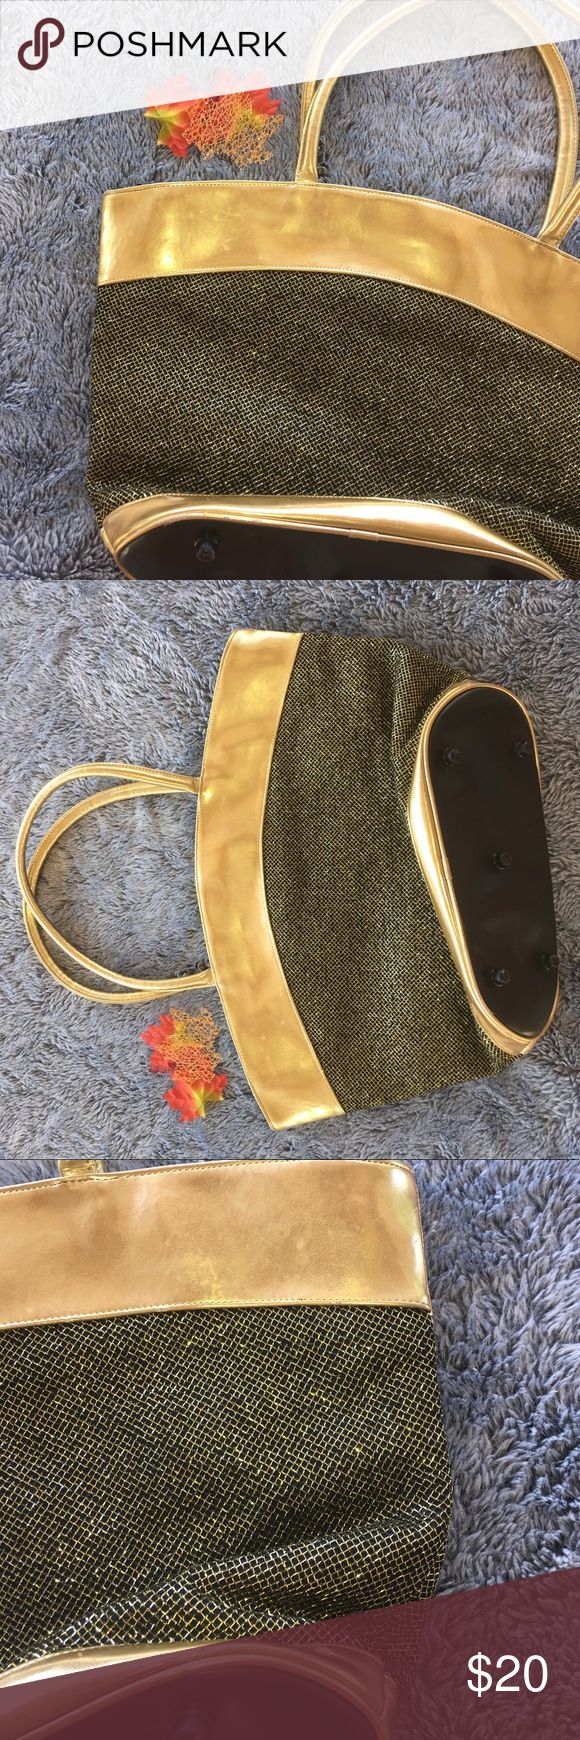 Gold Tote Bag Glitter tote bag in good condition does have a few scratches on the top but still in good condition by Mary Kay 💕 Bags Totes